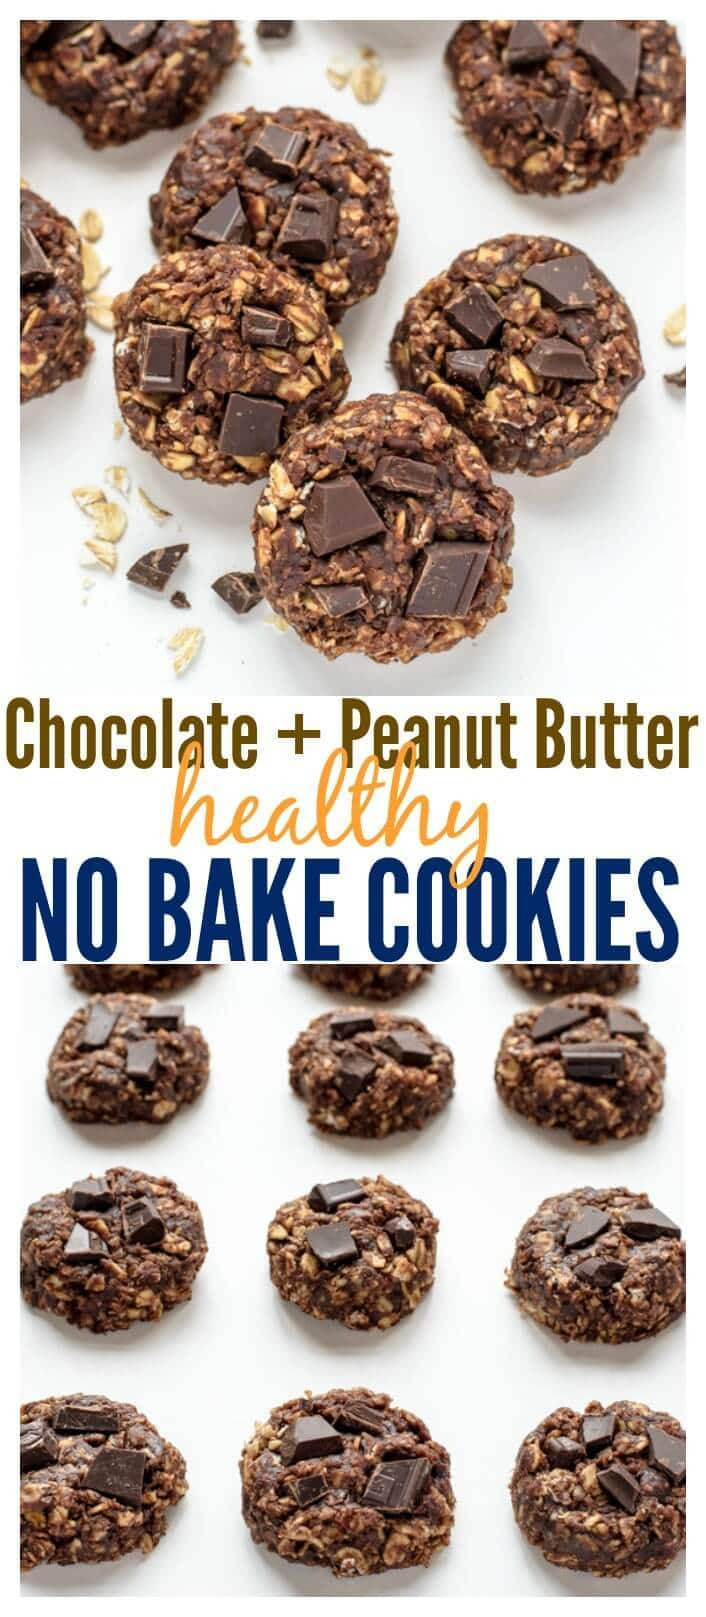 Healthy No Bake Cookies without Peanut butter the Best Ideas for Healthy No Bake Cookies with Chocolate and Peanut butter